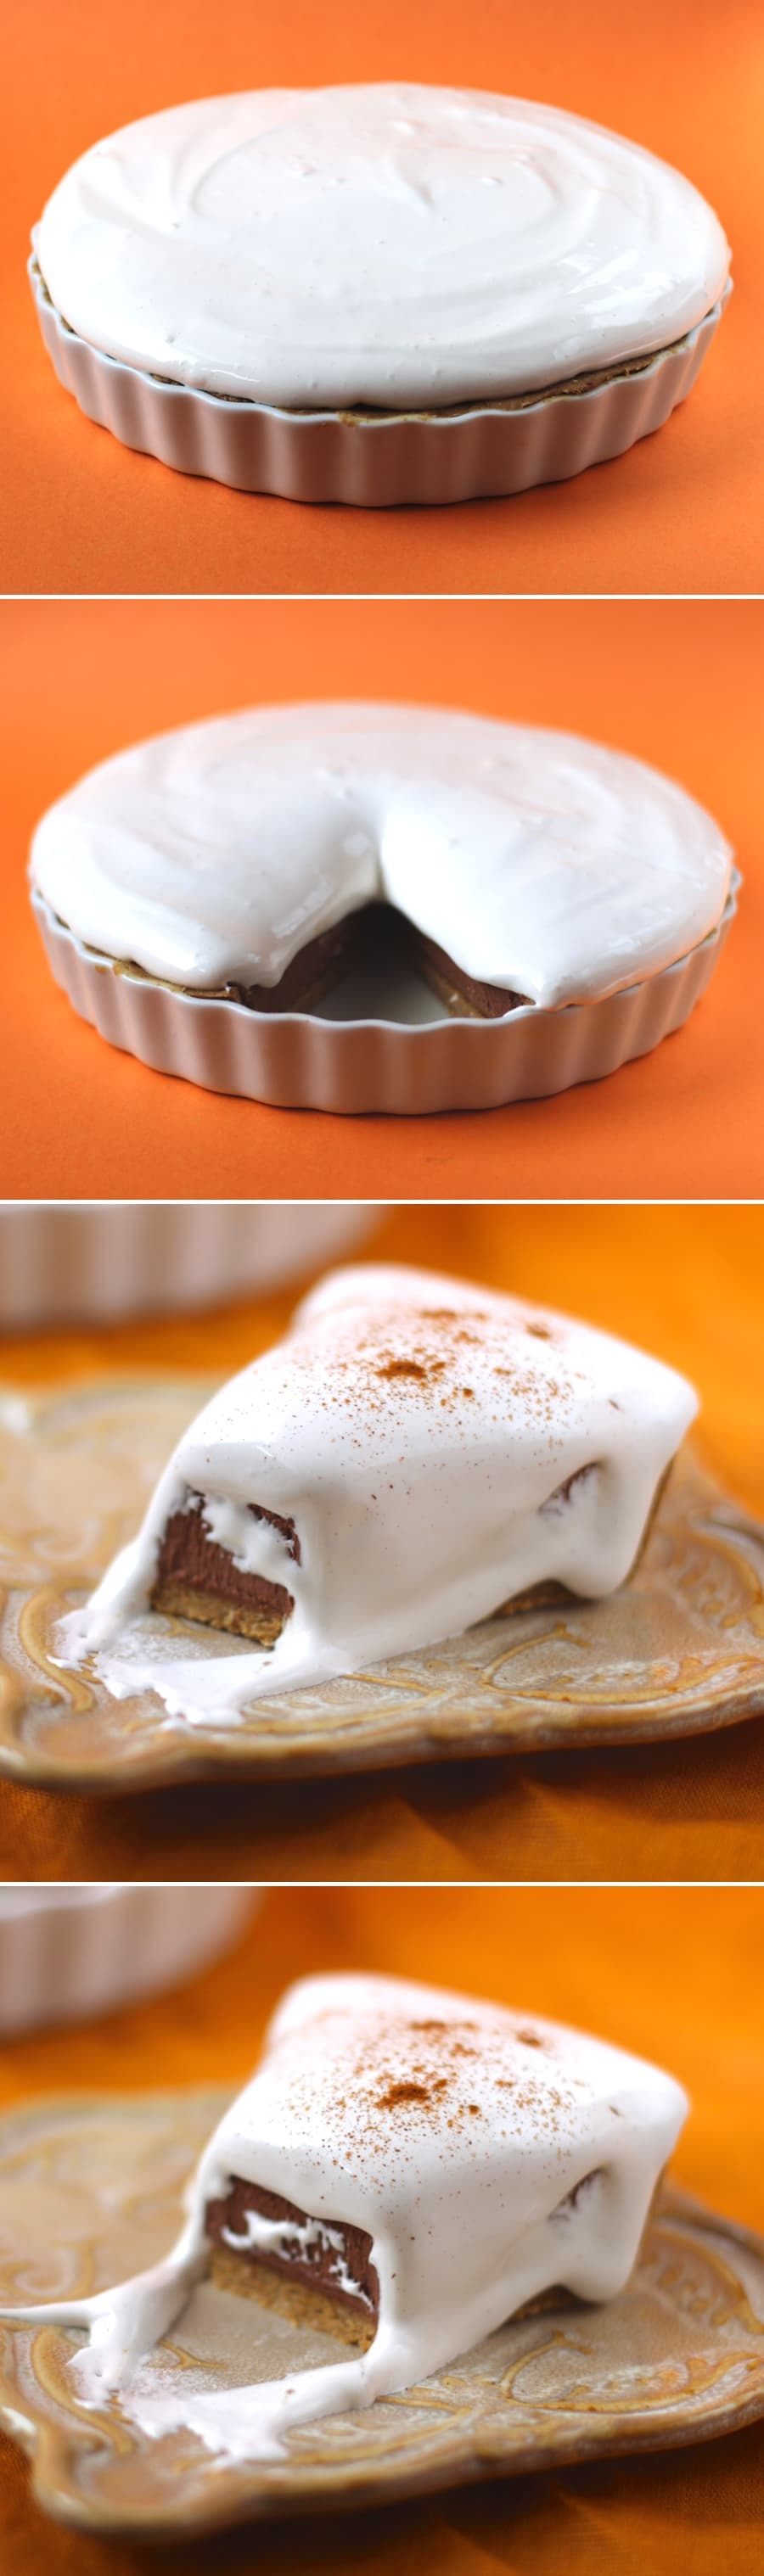 Healthy Smores Pie | Healthy Dessert Recipes at the Desserts With Benefits Blog